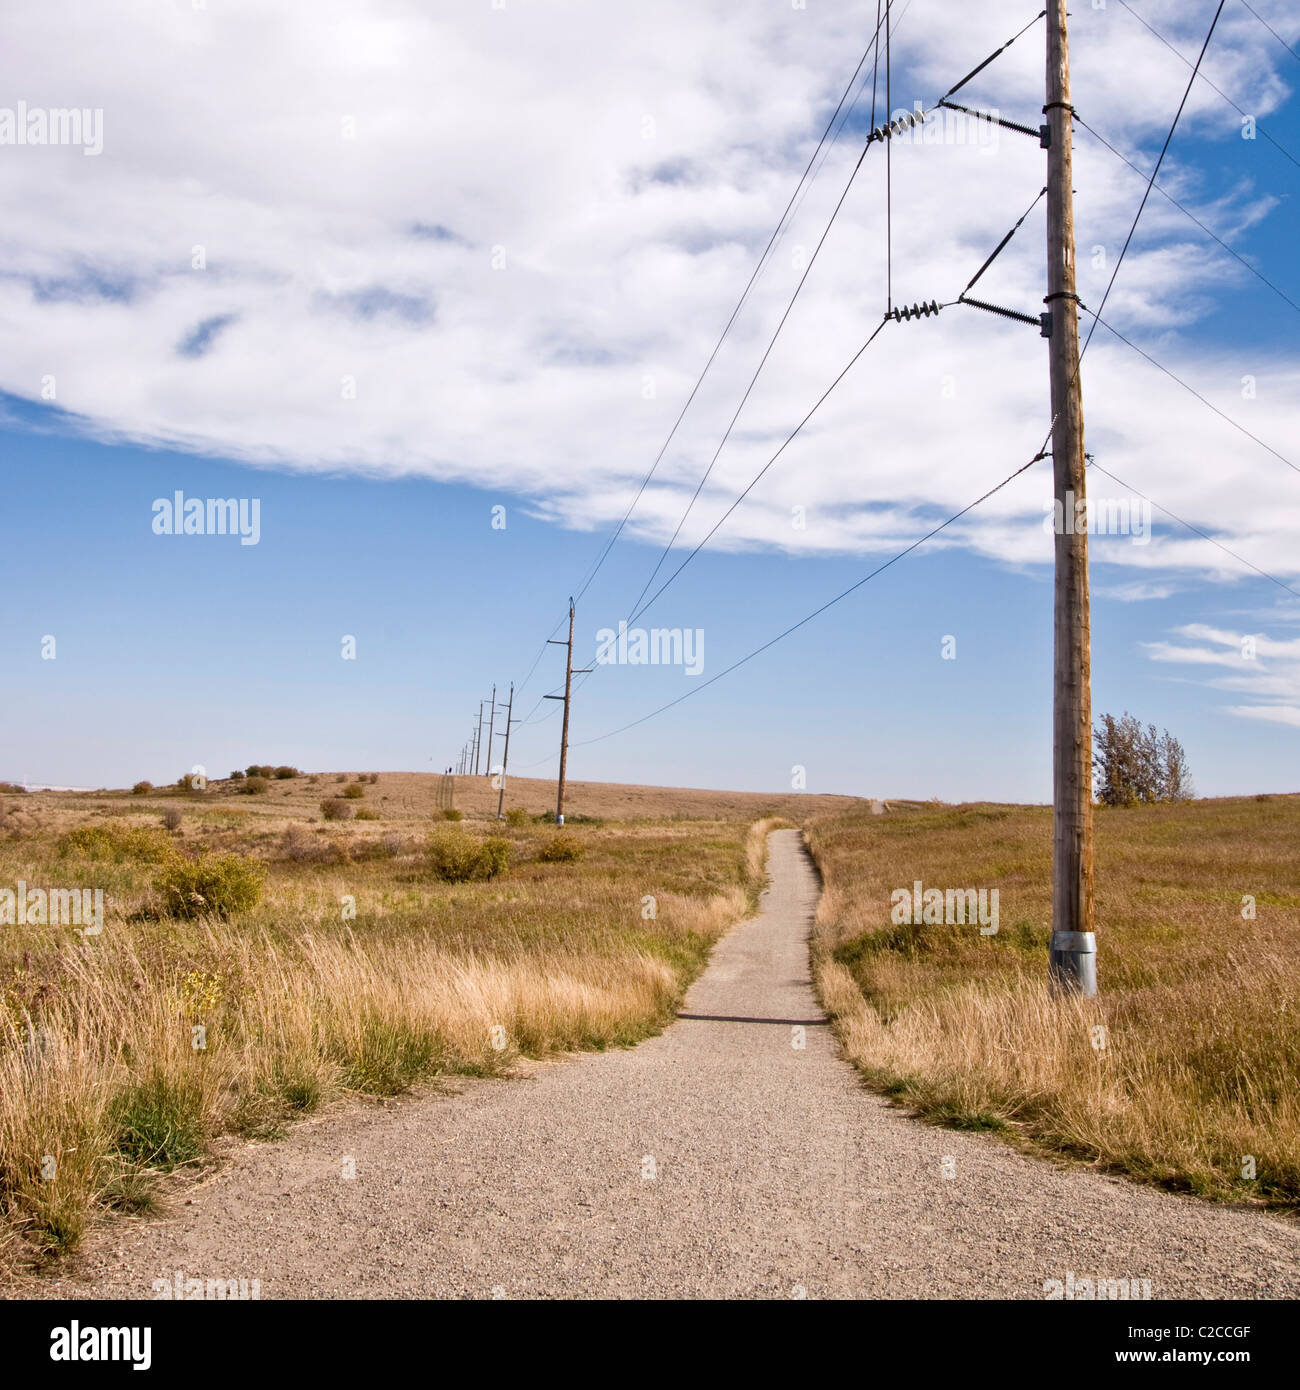 Power lines dotting a walking trail in Nosehill Park, a massive urban park in Calgary, Alberta, Canada. - Stock Image